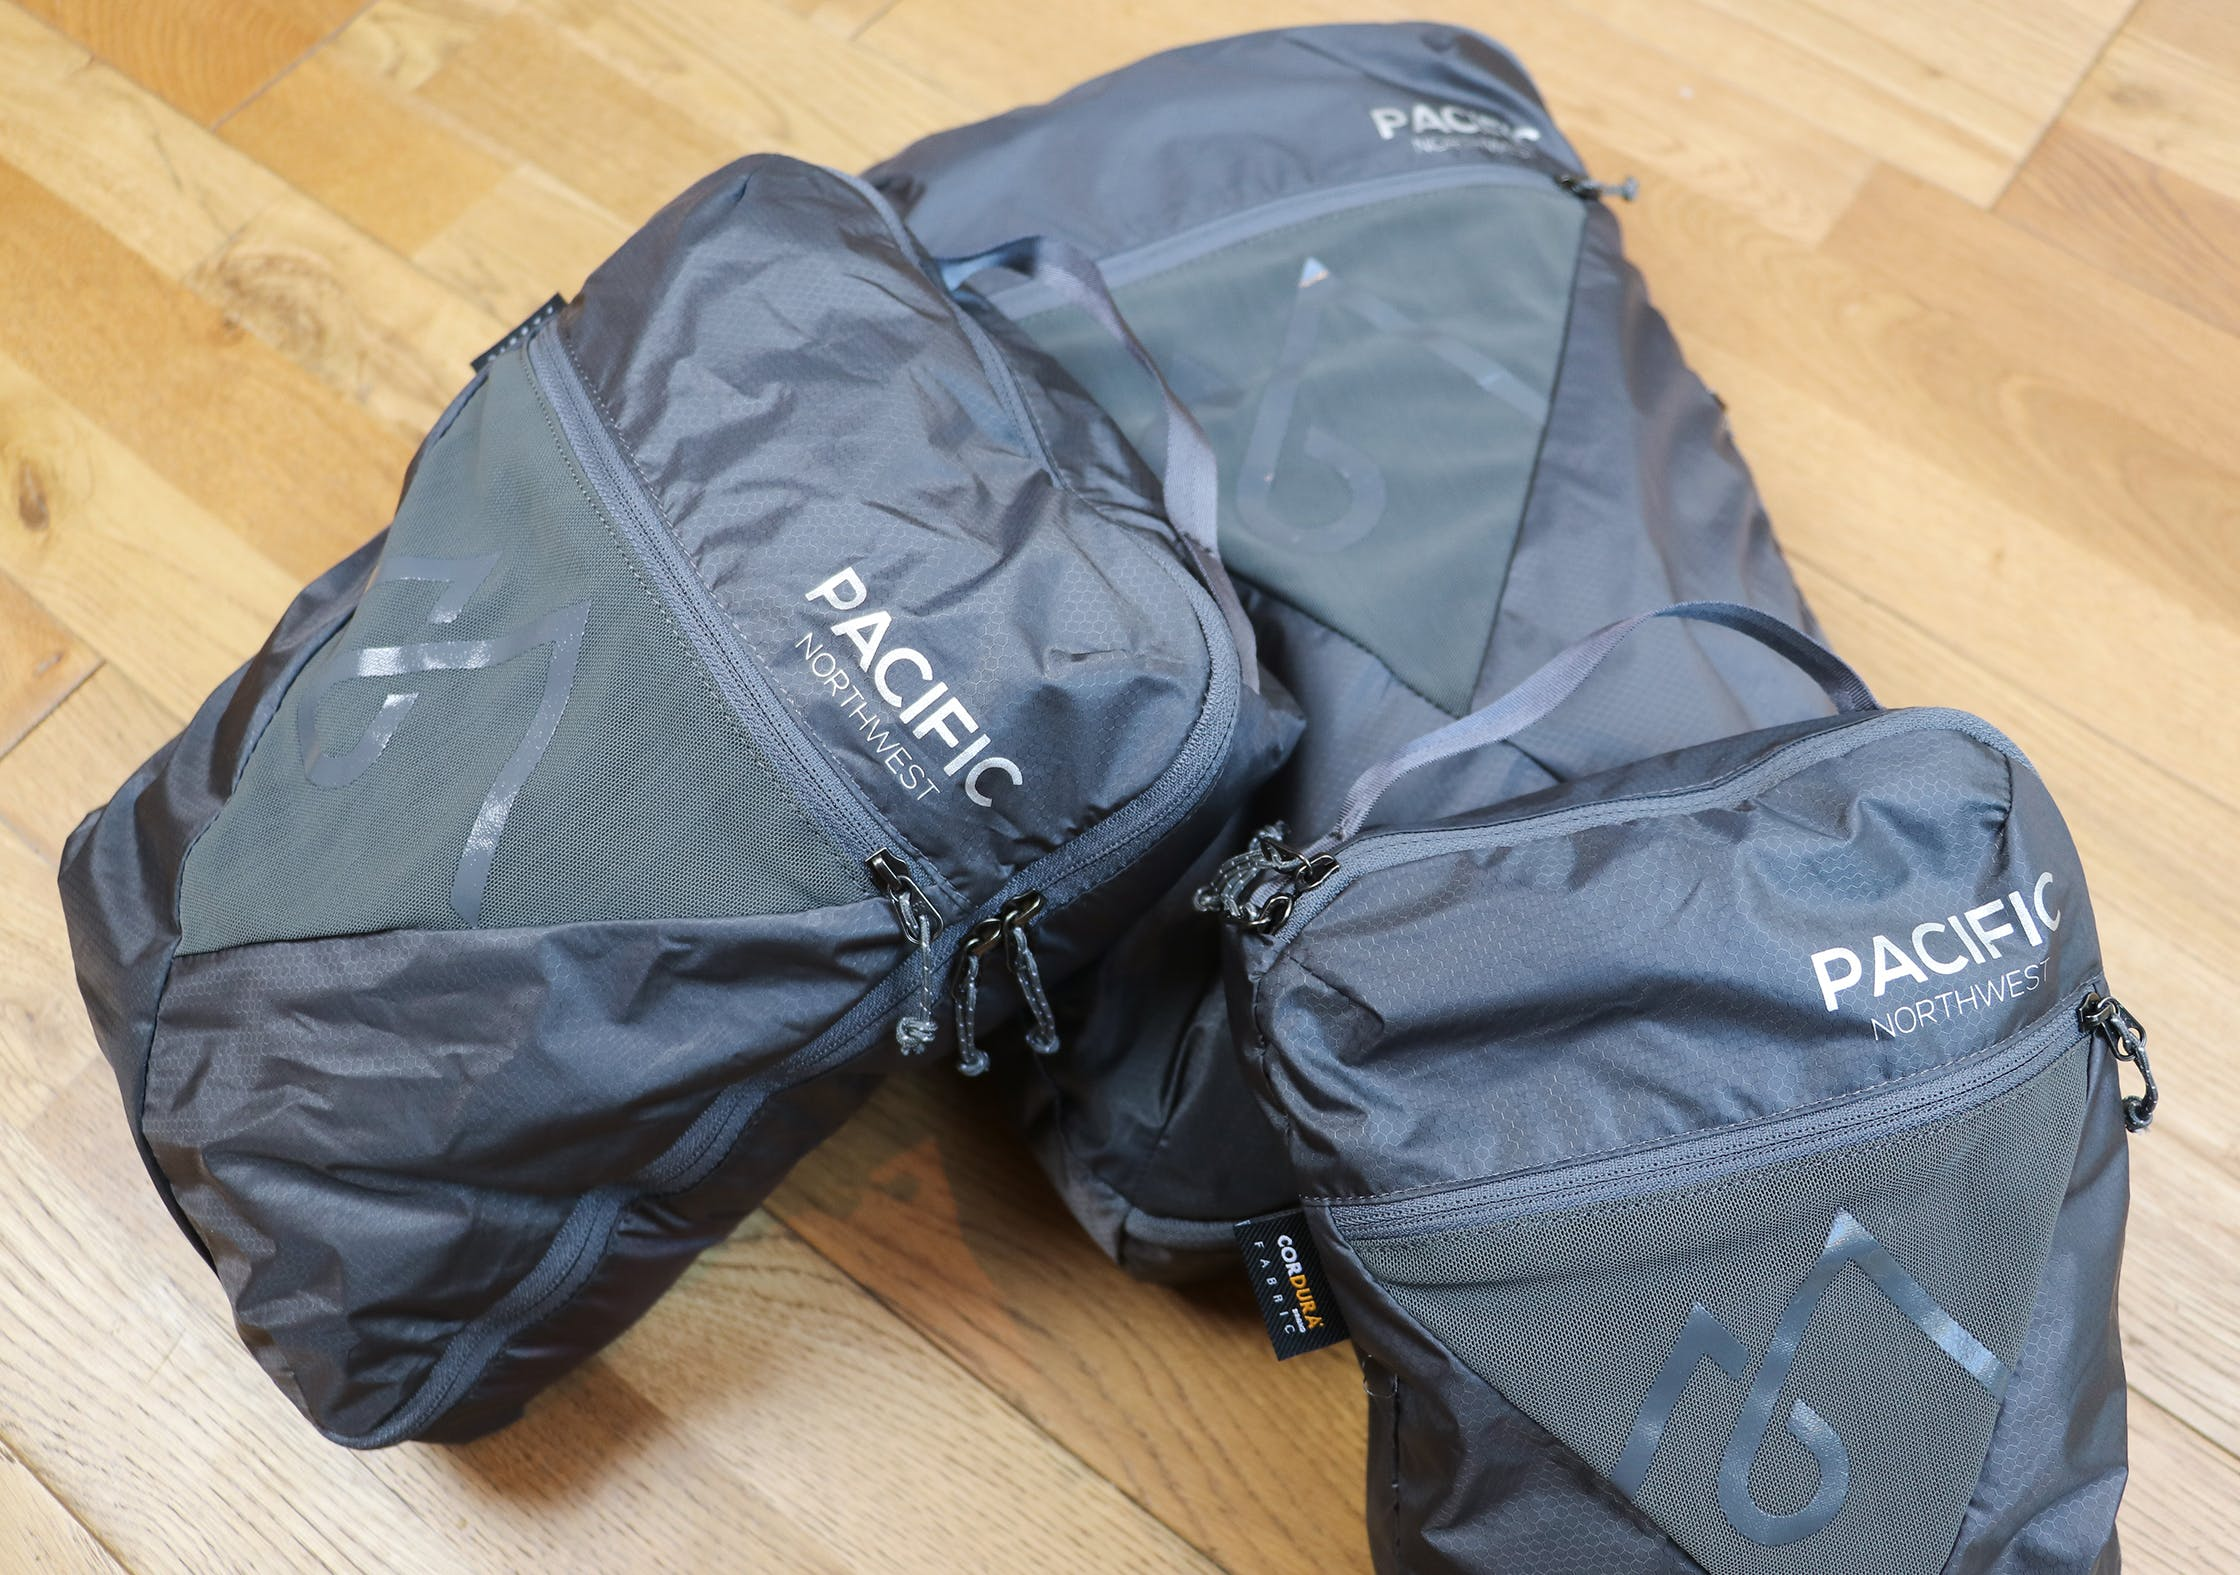 Pacific Northwest Elfin Packing Cubes Set